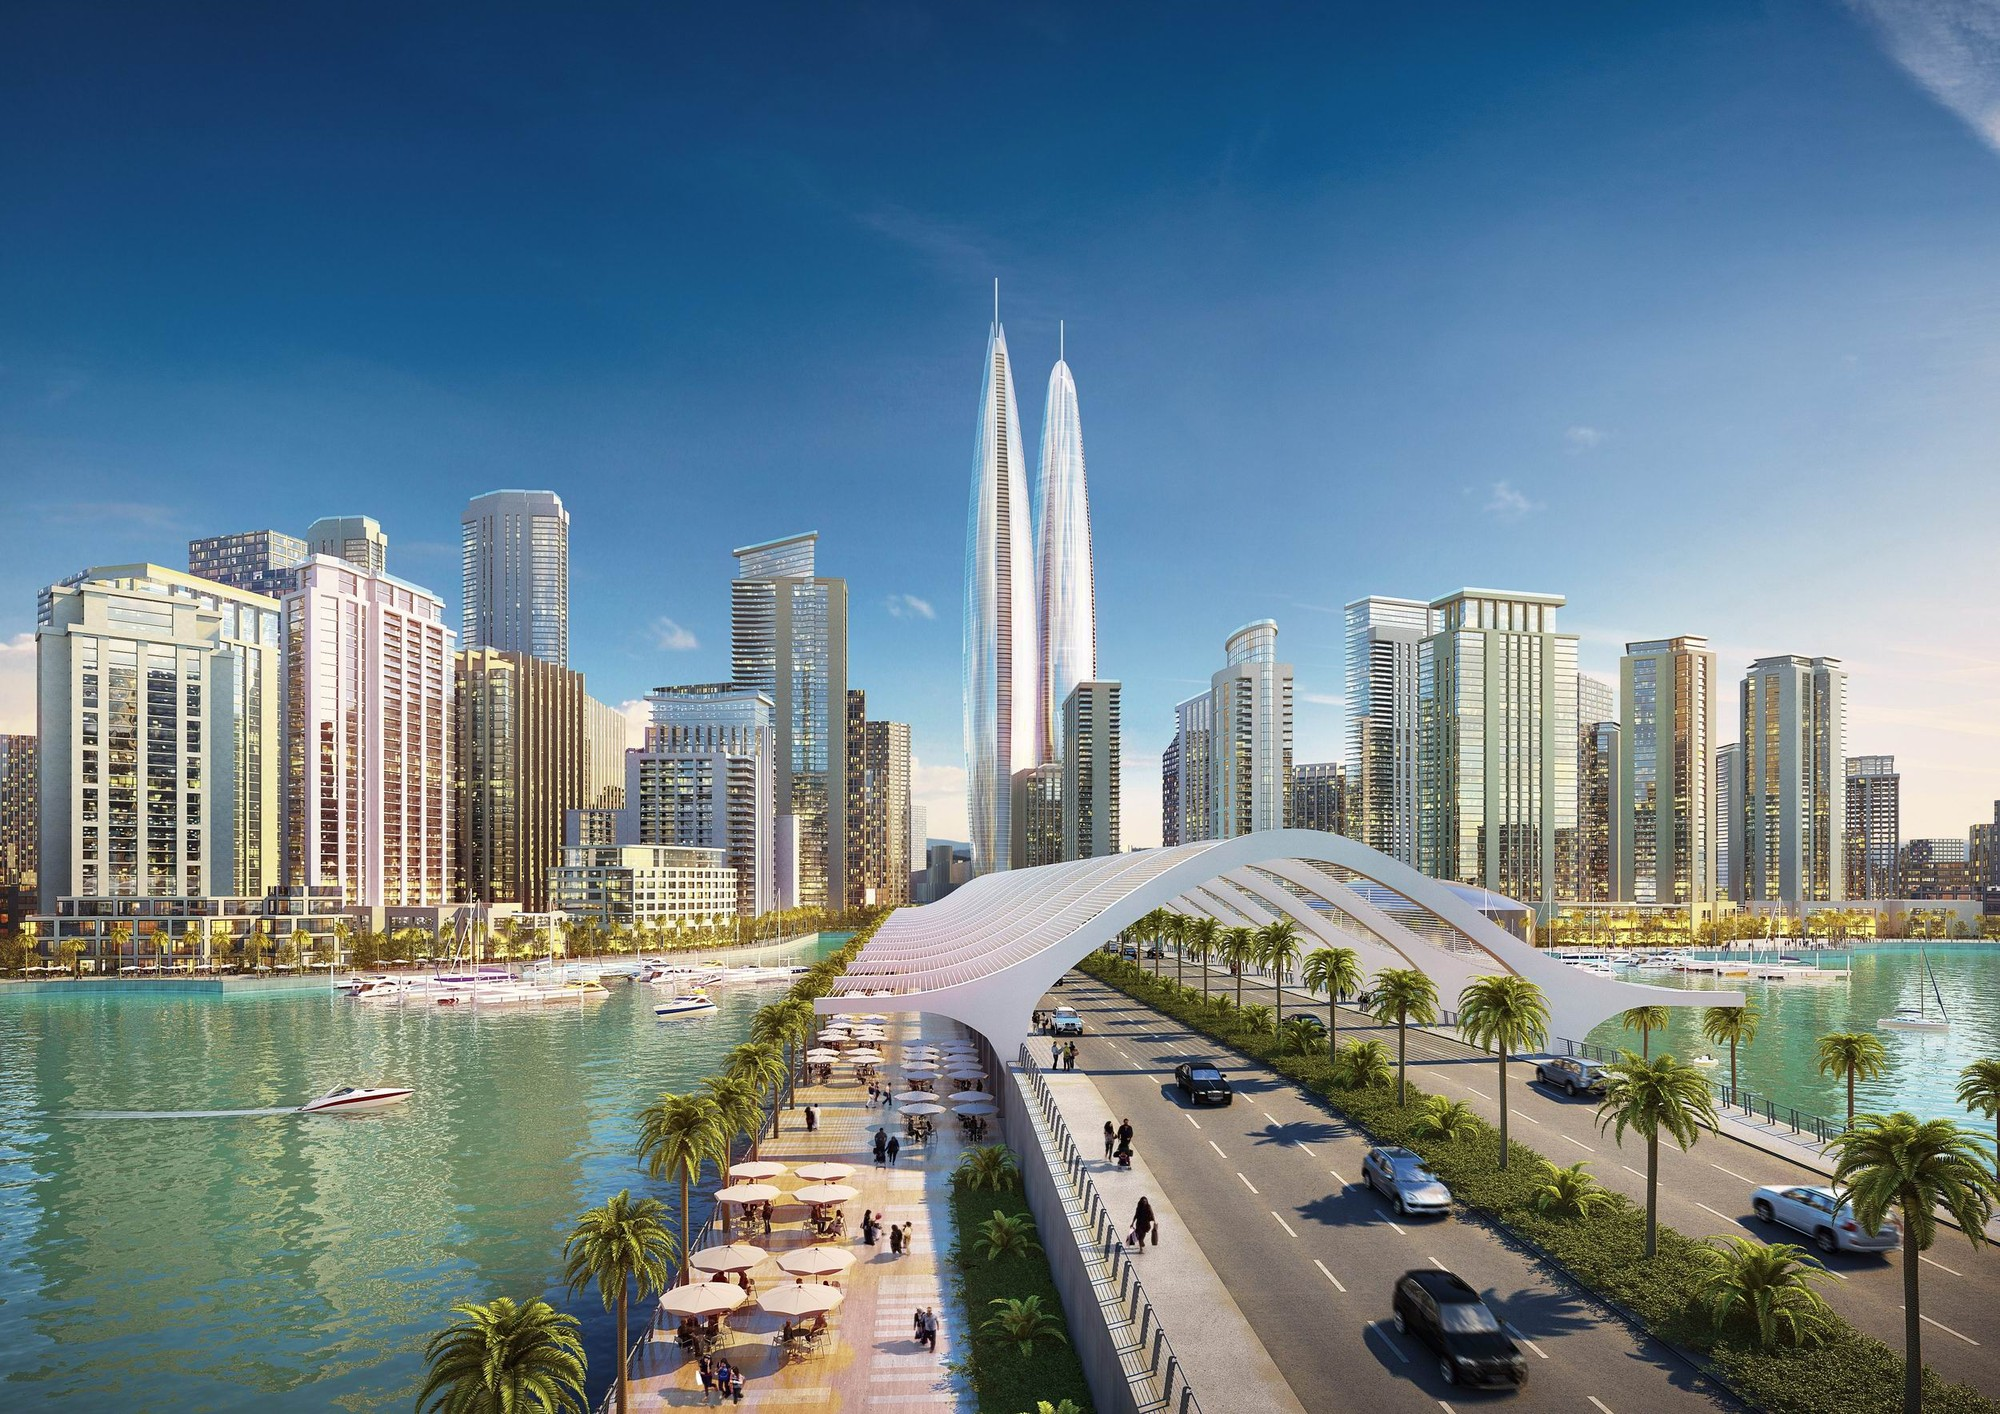 World's Tallest Twin Towers Planned for Dubai, © Emaar Properties and Dubai Holding; Courtesy of Gizmodo